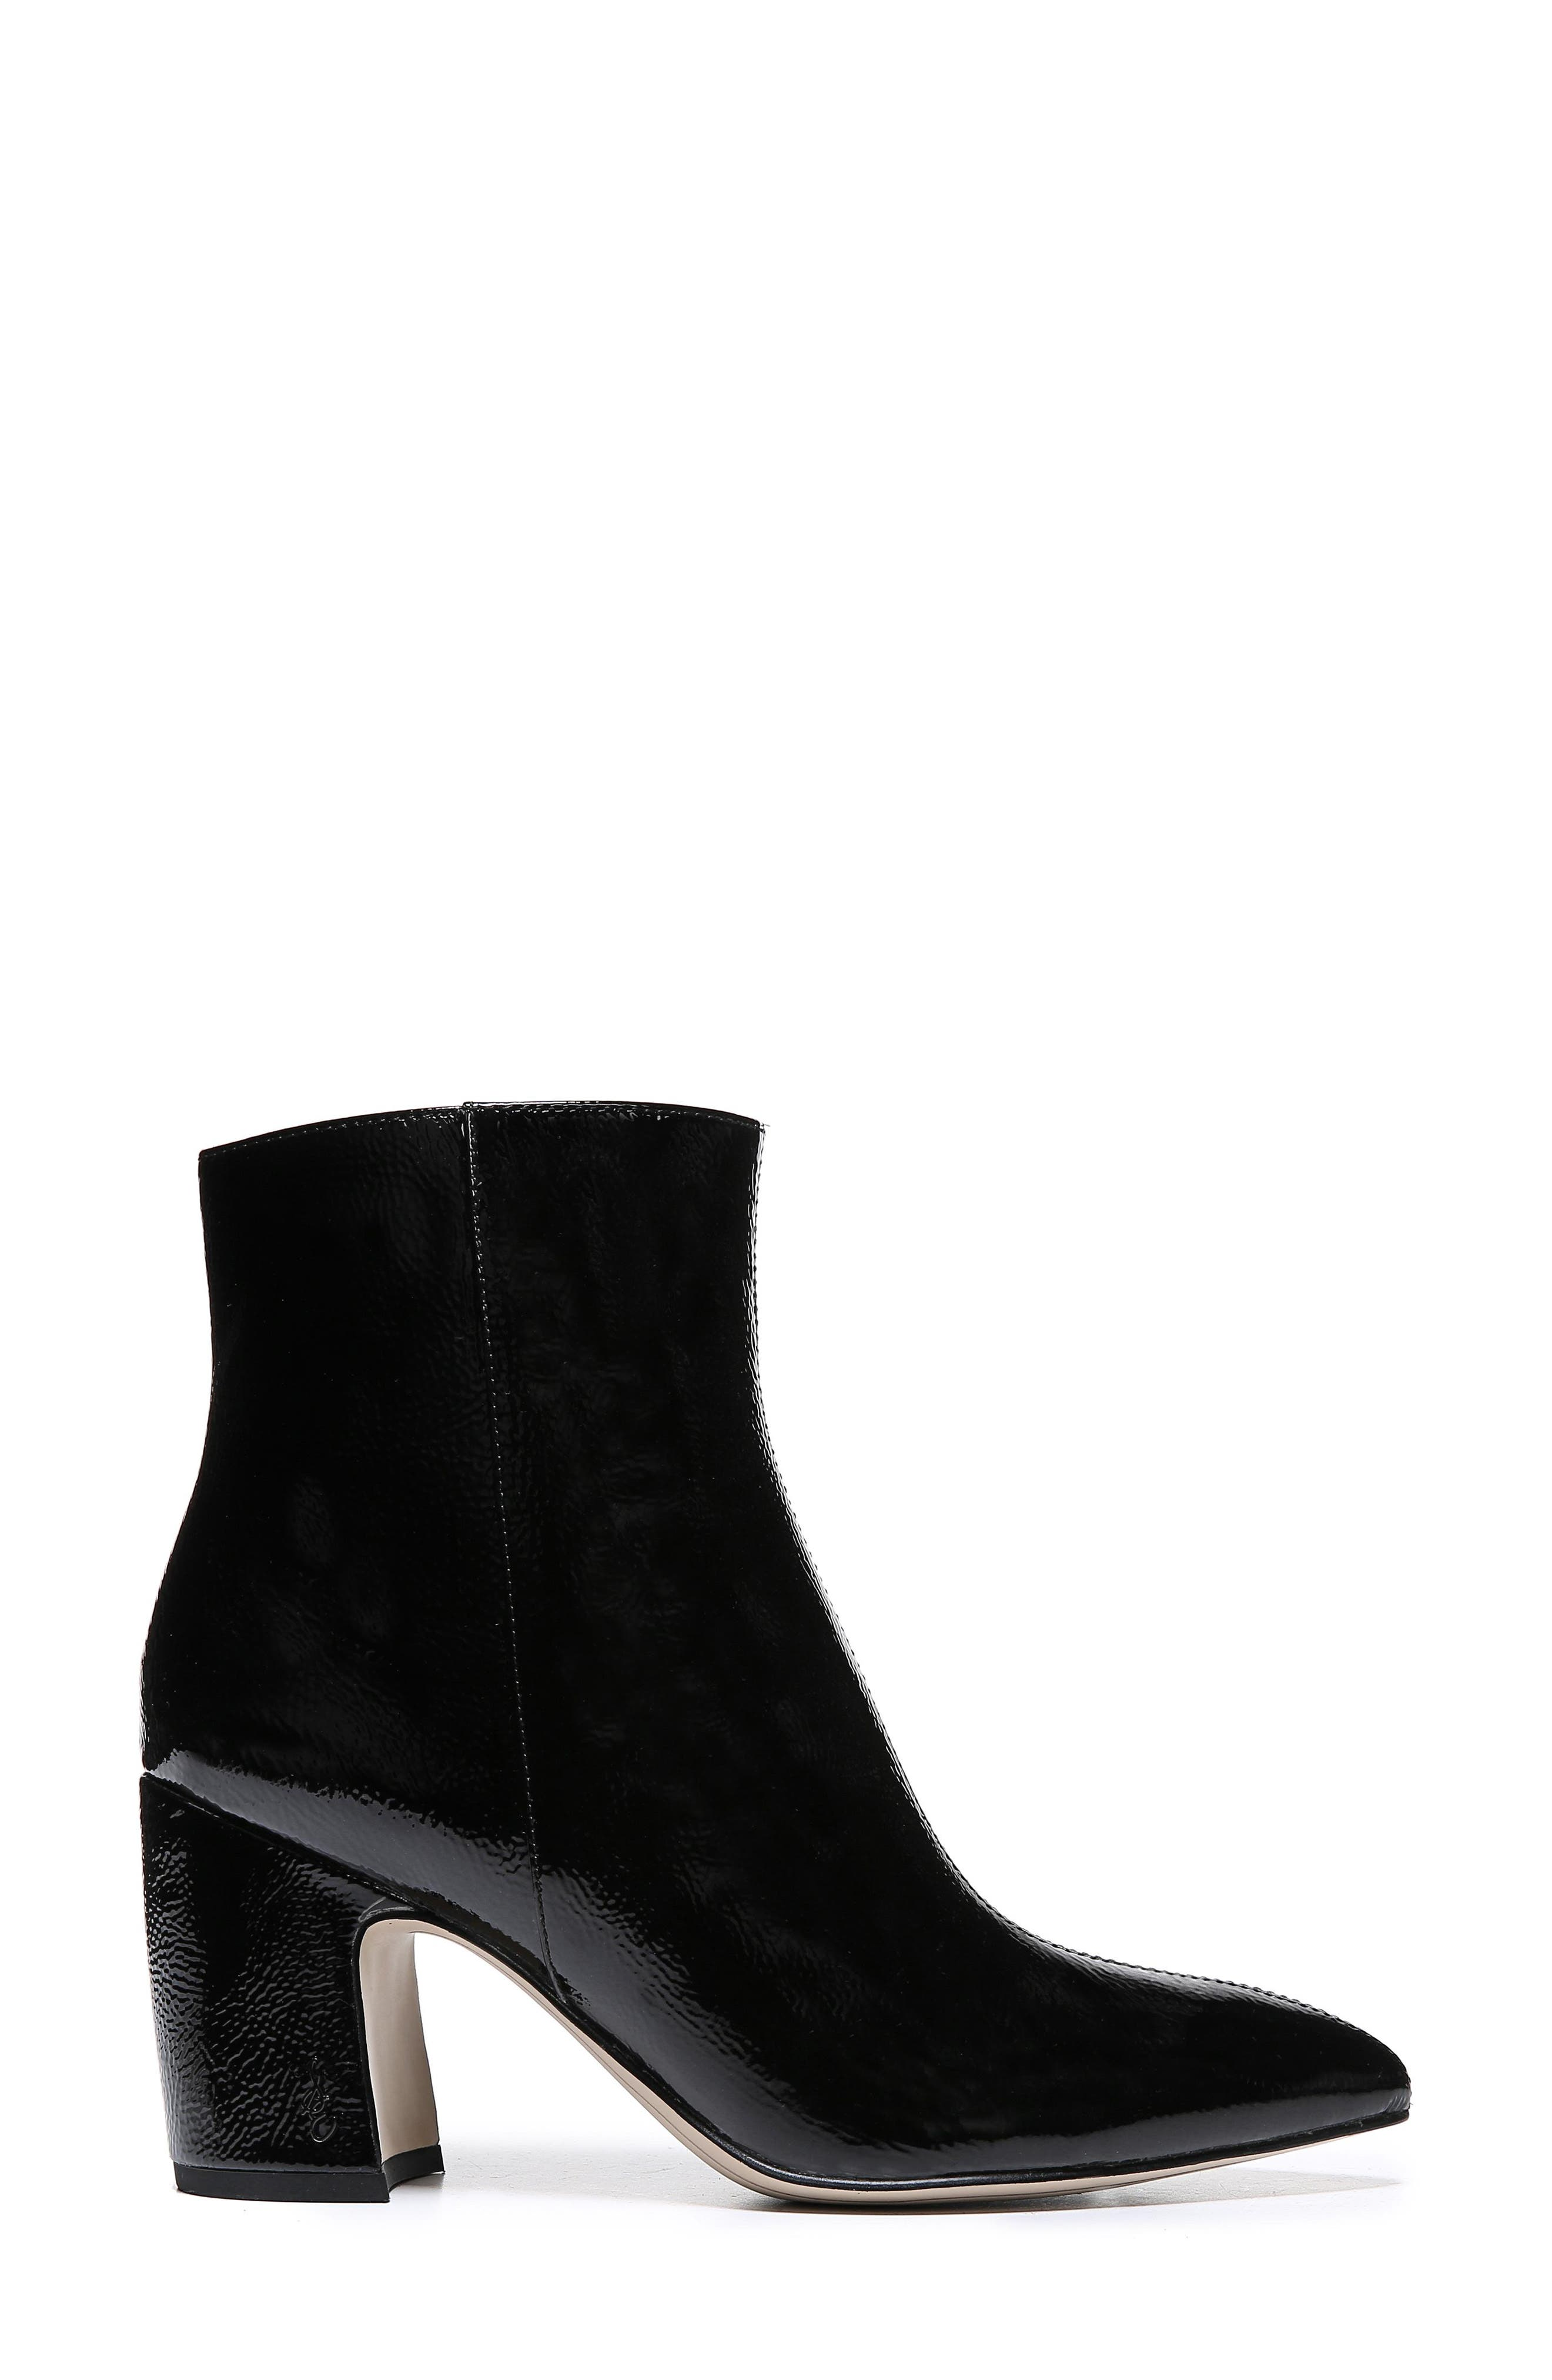 Hilty Genuine Calf Hair Bootie,                             Alternate thumbnail 3, color,                             BLACK PATENT LEATHER